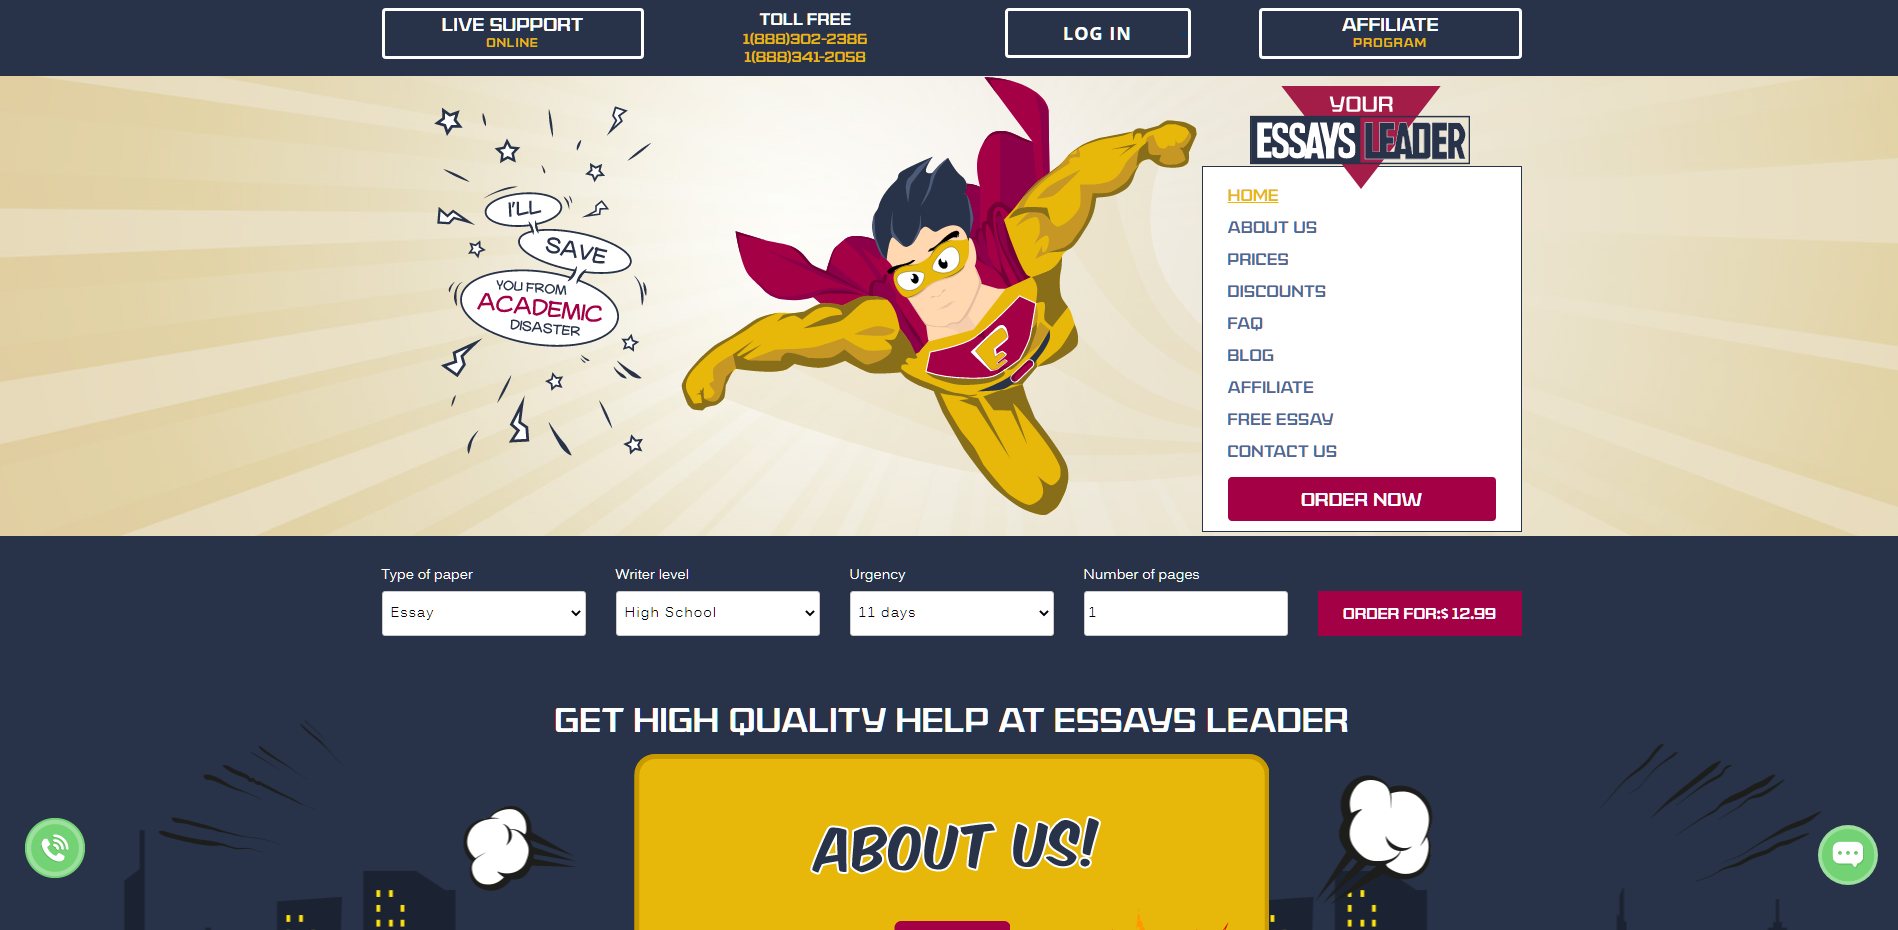 Essaysleader Review